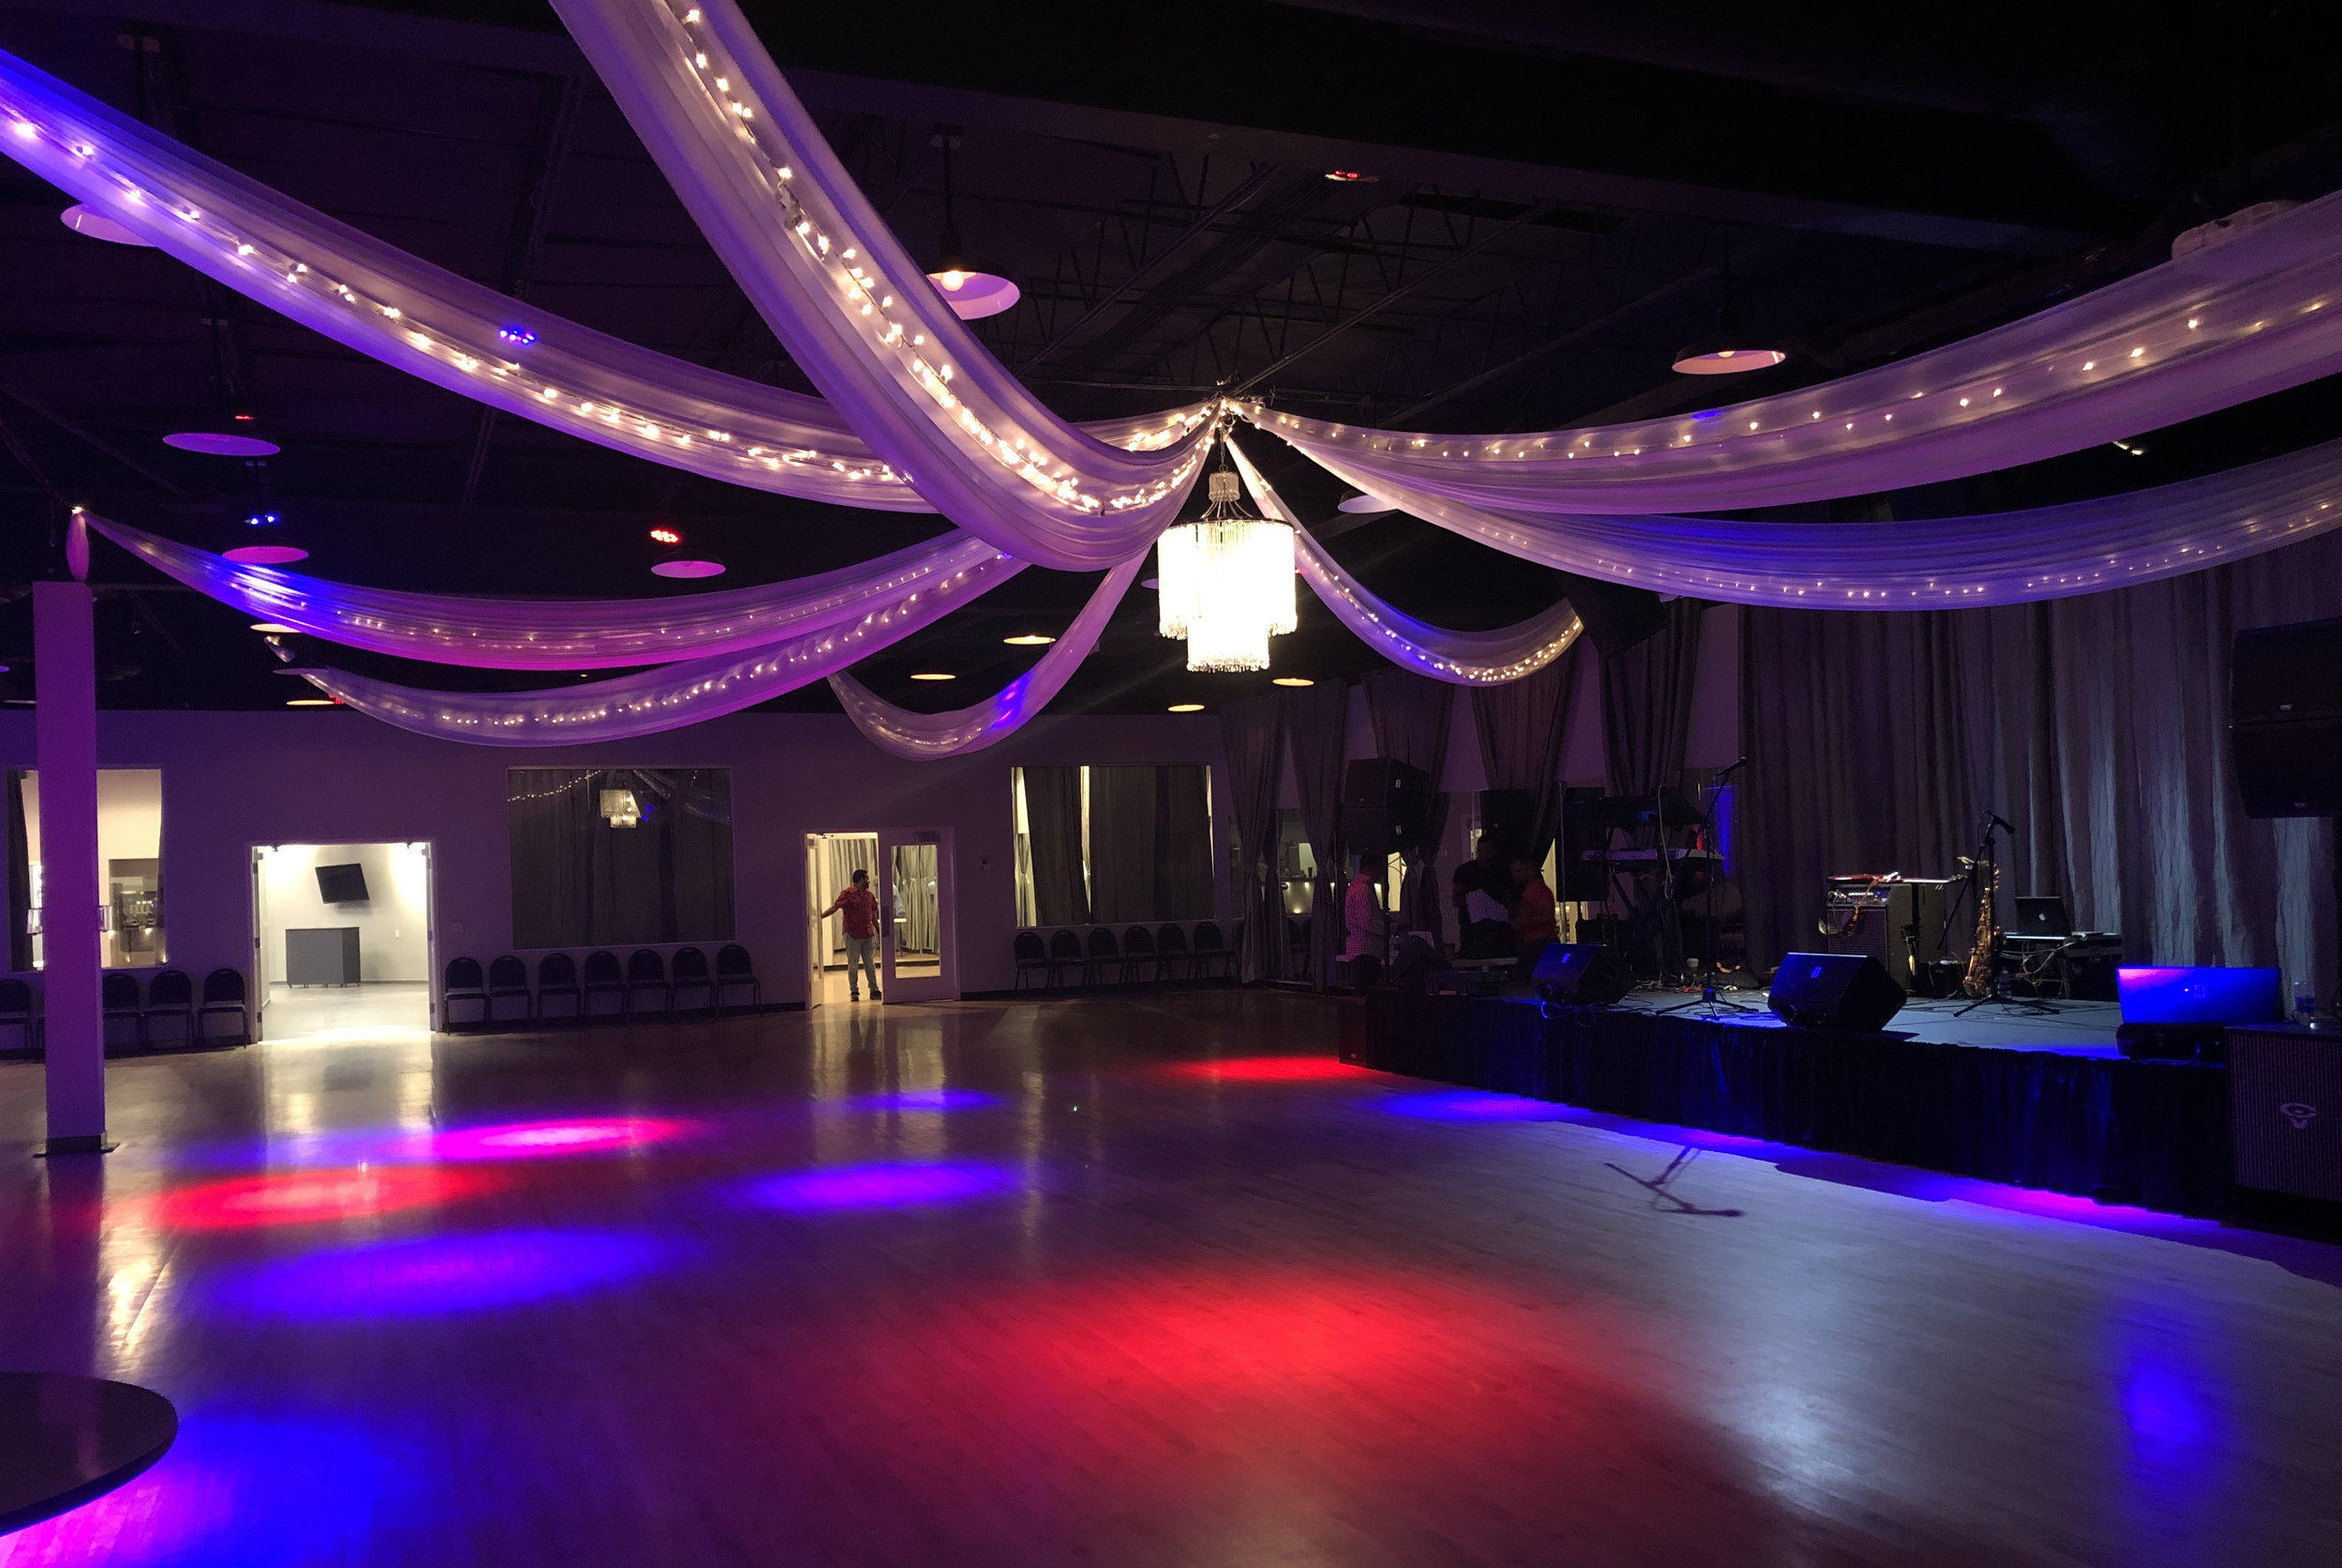 Midpointe Event Center Majestic Hall Concert Setup.jpg